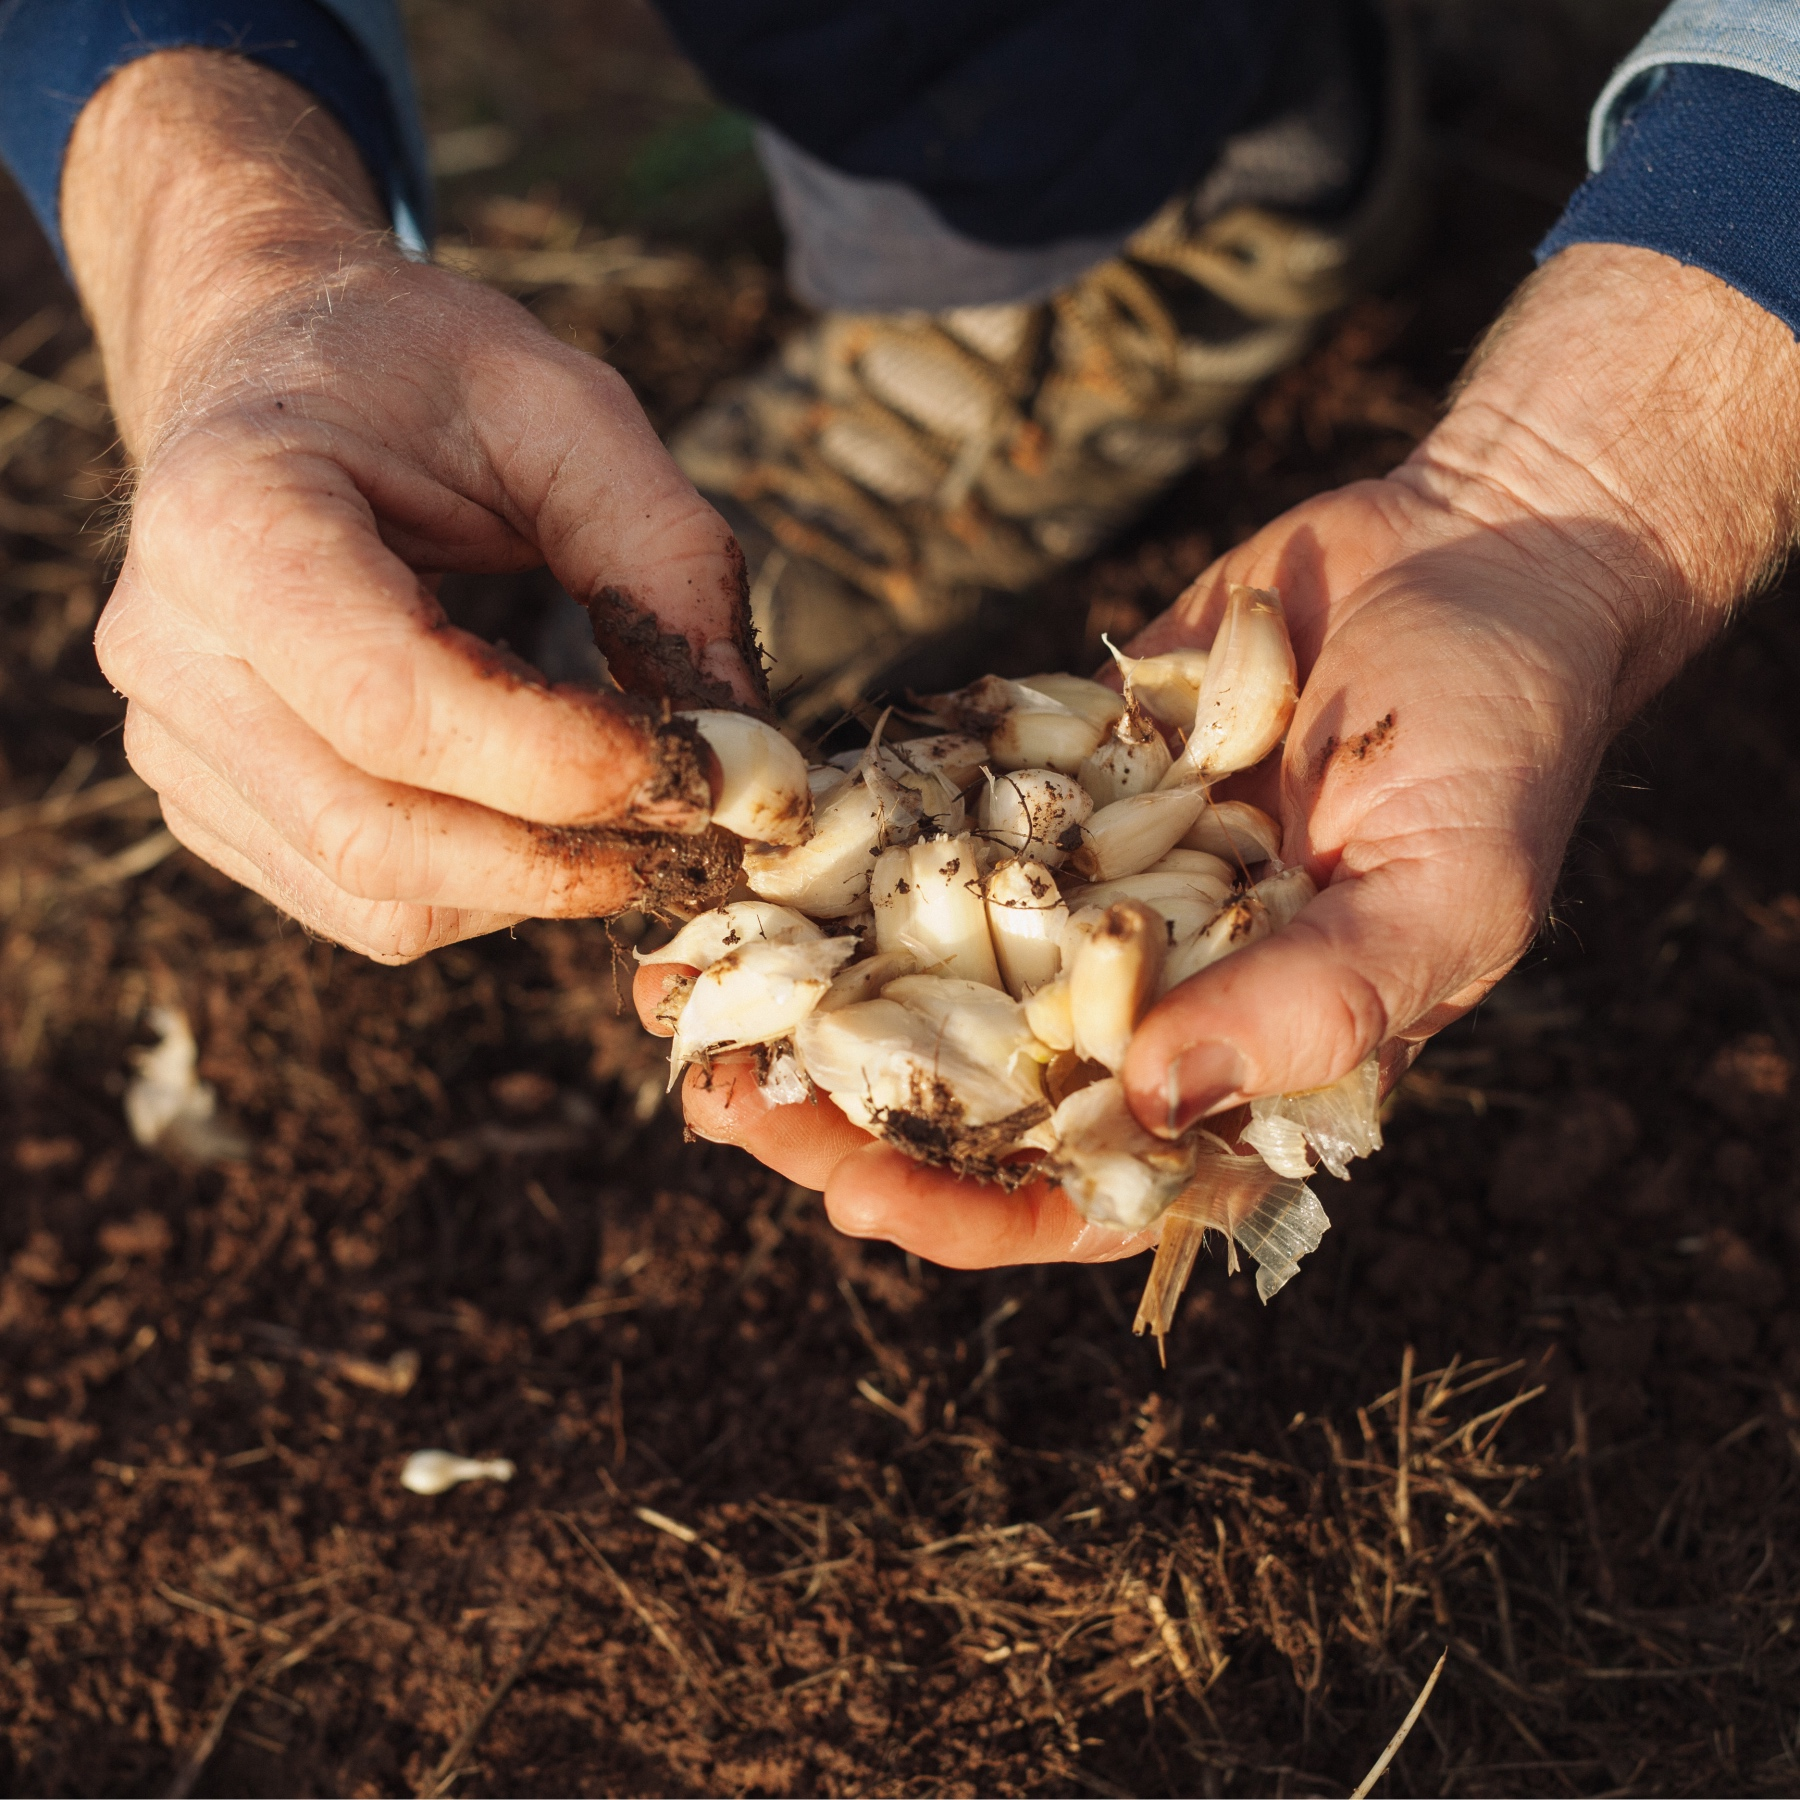 Katamatite Garlic is a family owned organic garlic farm in Katamatite, Victoria